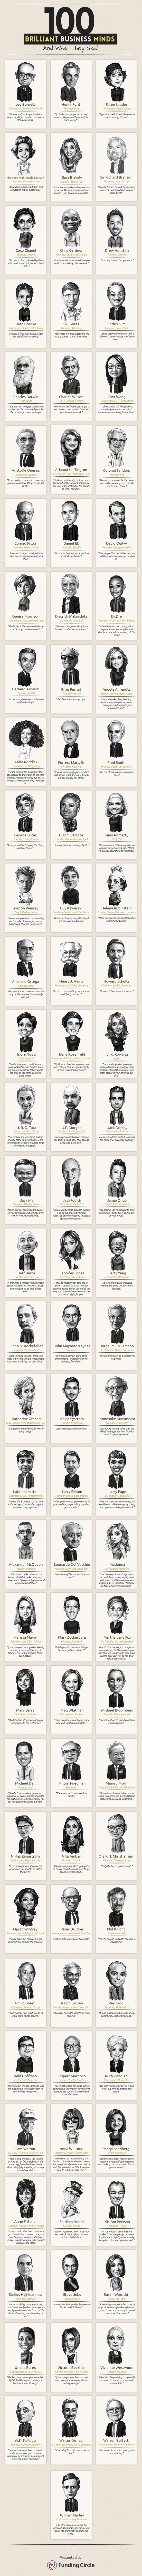 100-brilliant-business-minds-infographic